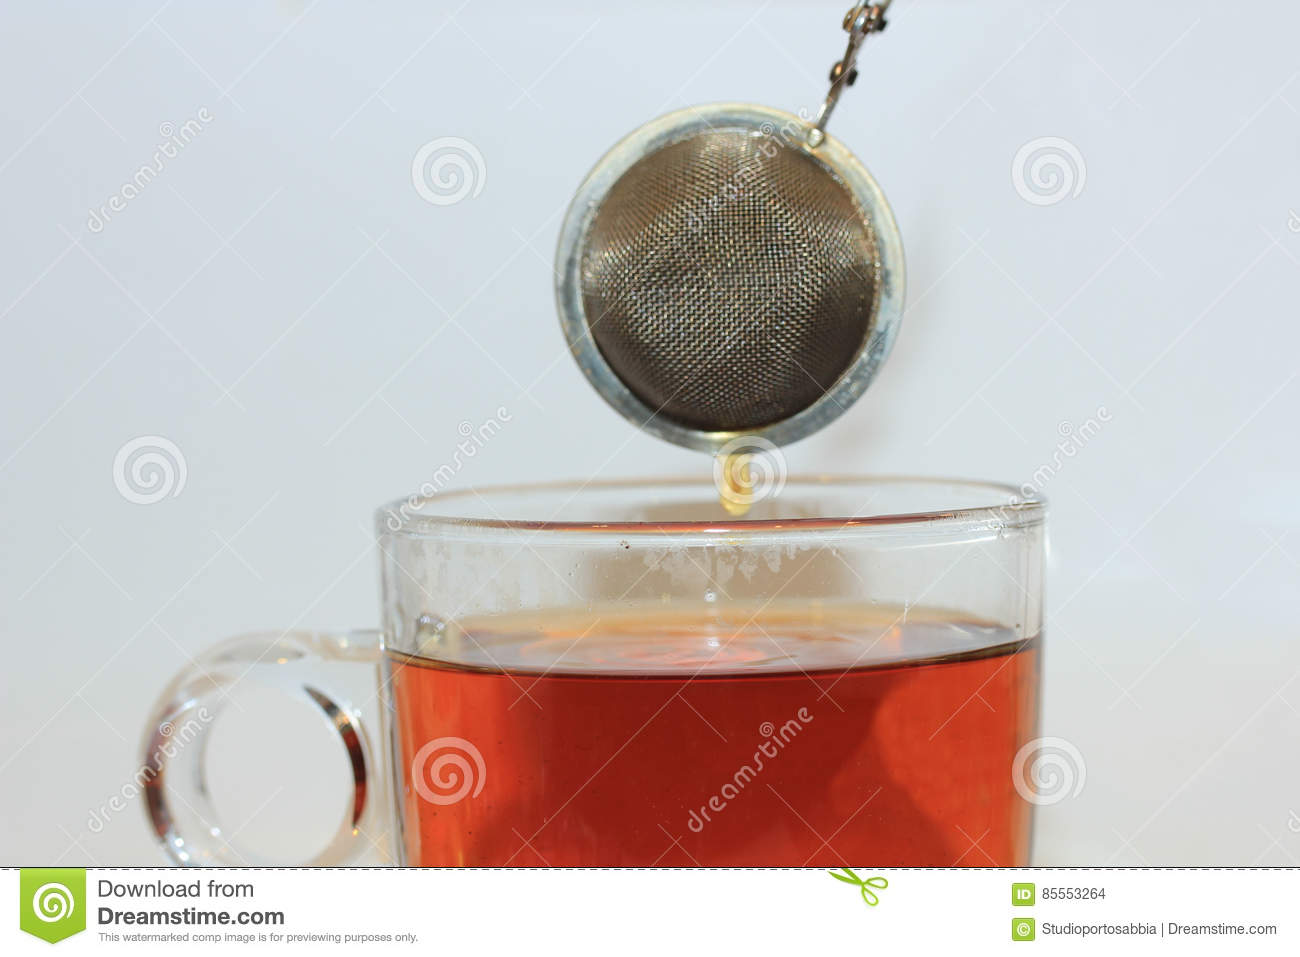 Making tea with infuser